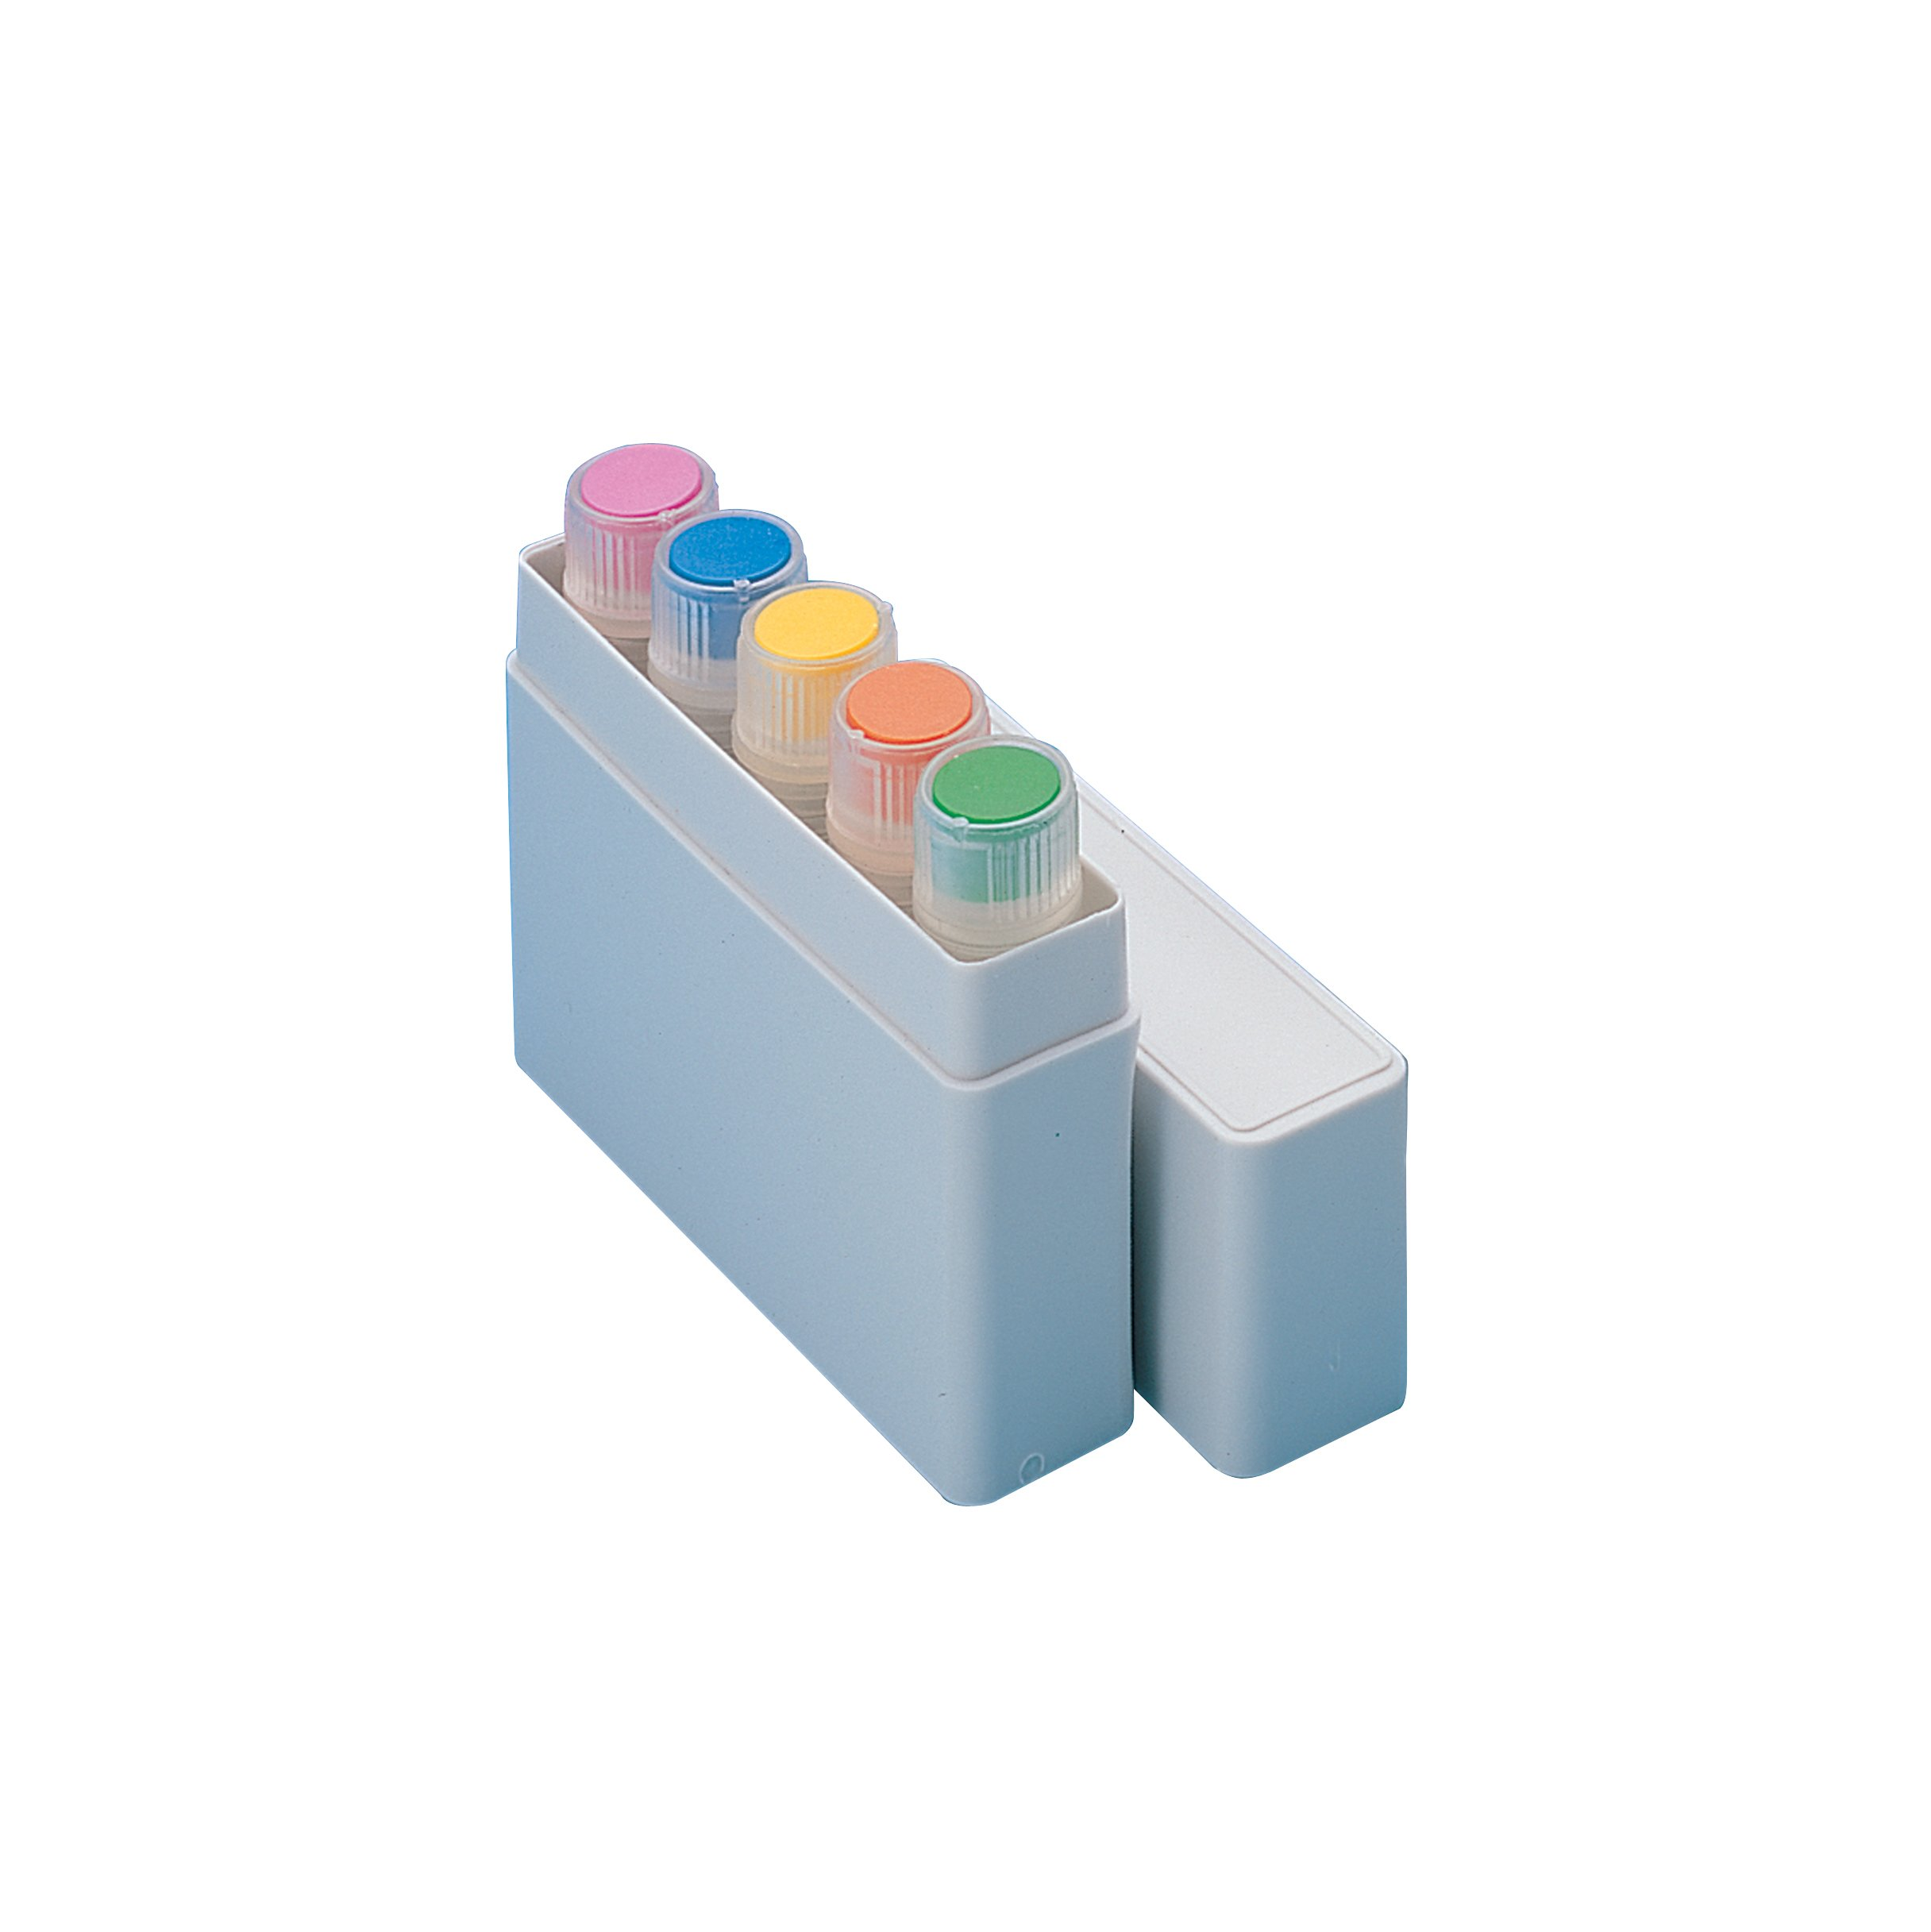 Nunc HIPS MiniBoxes for CryoTubes, Can hold 5 vial, 1.0ml - 1.8ml Capacity (Case of 350)